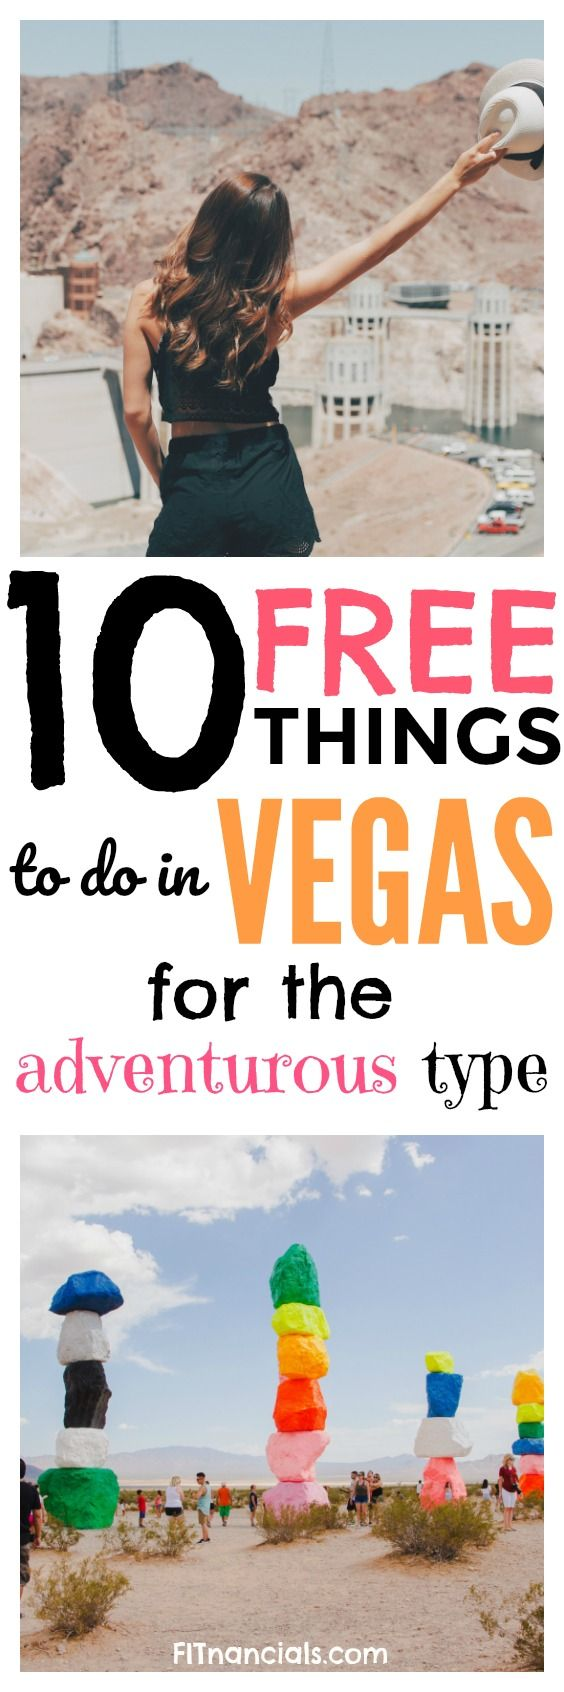 10 Awesome Free Things To Do In Las Vegas, Nevada